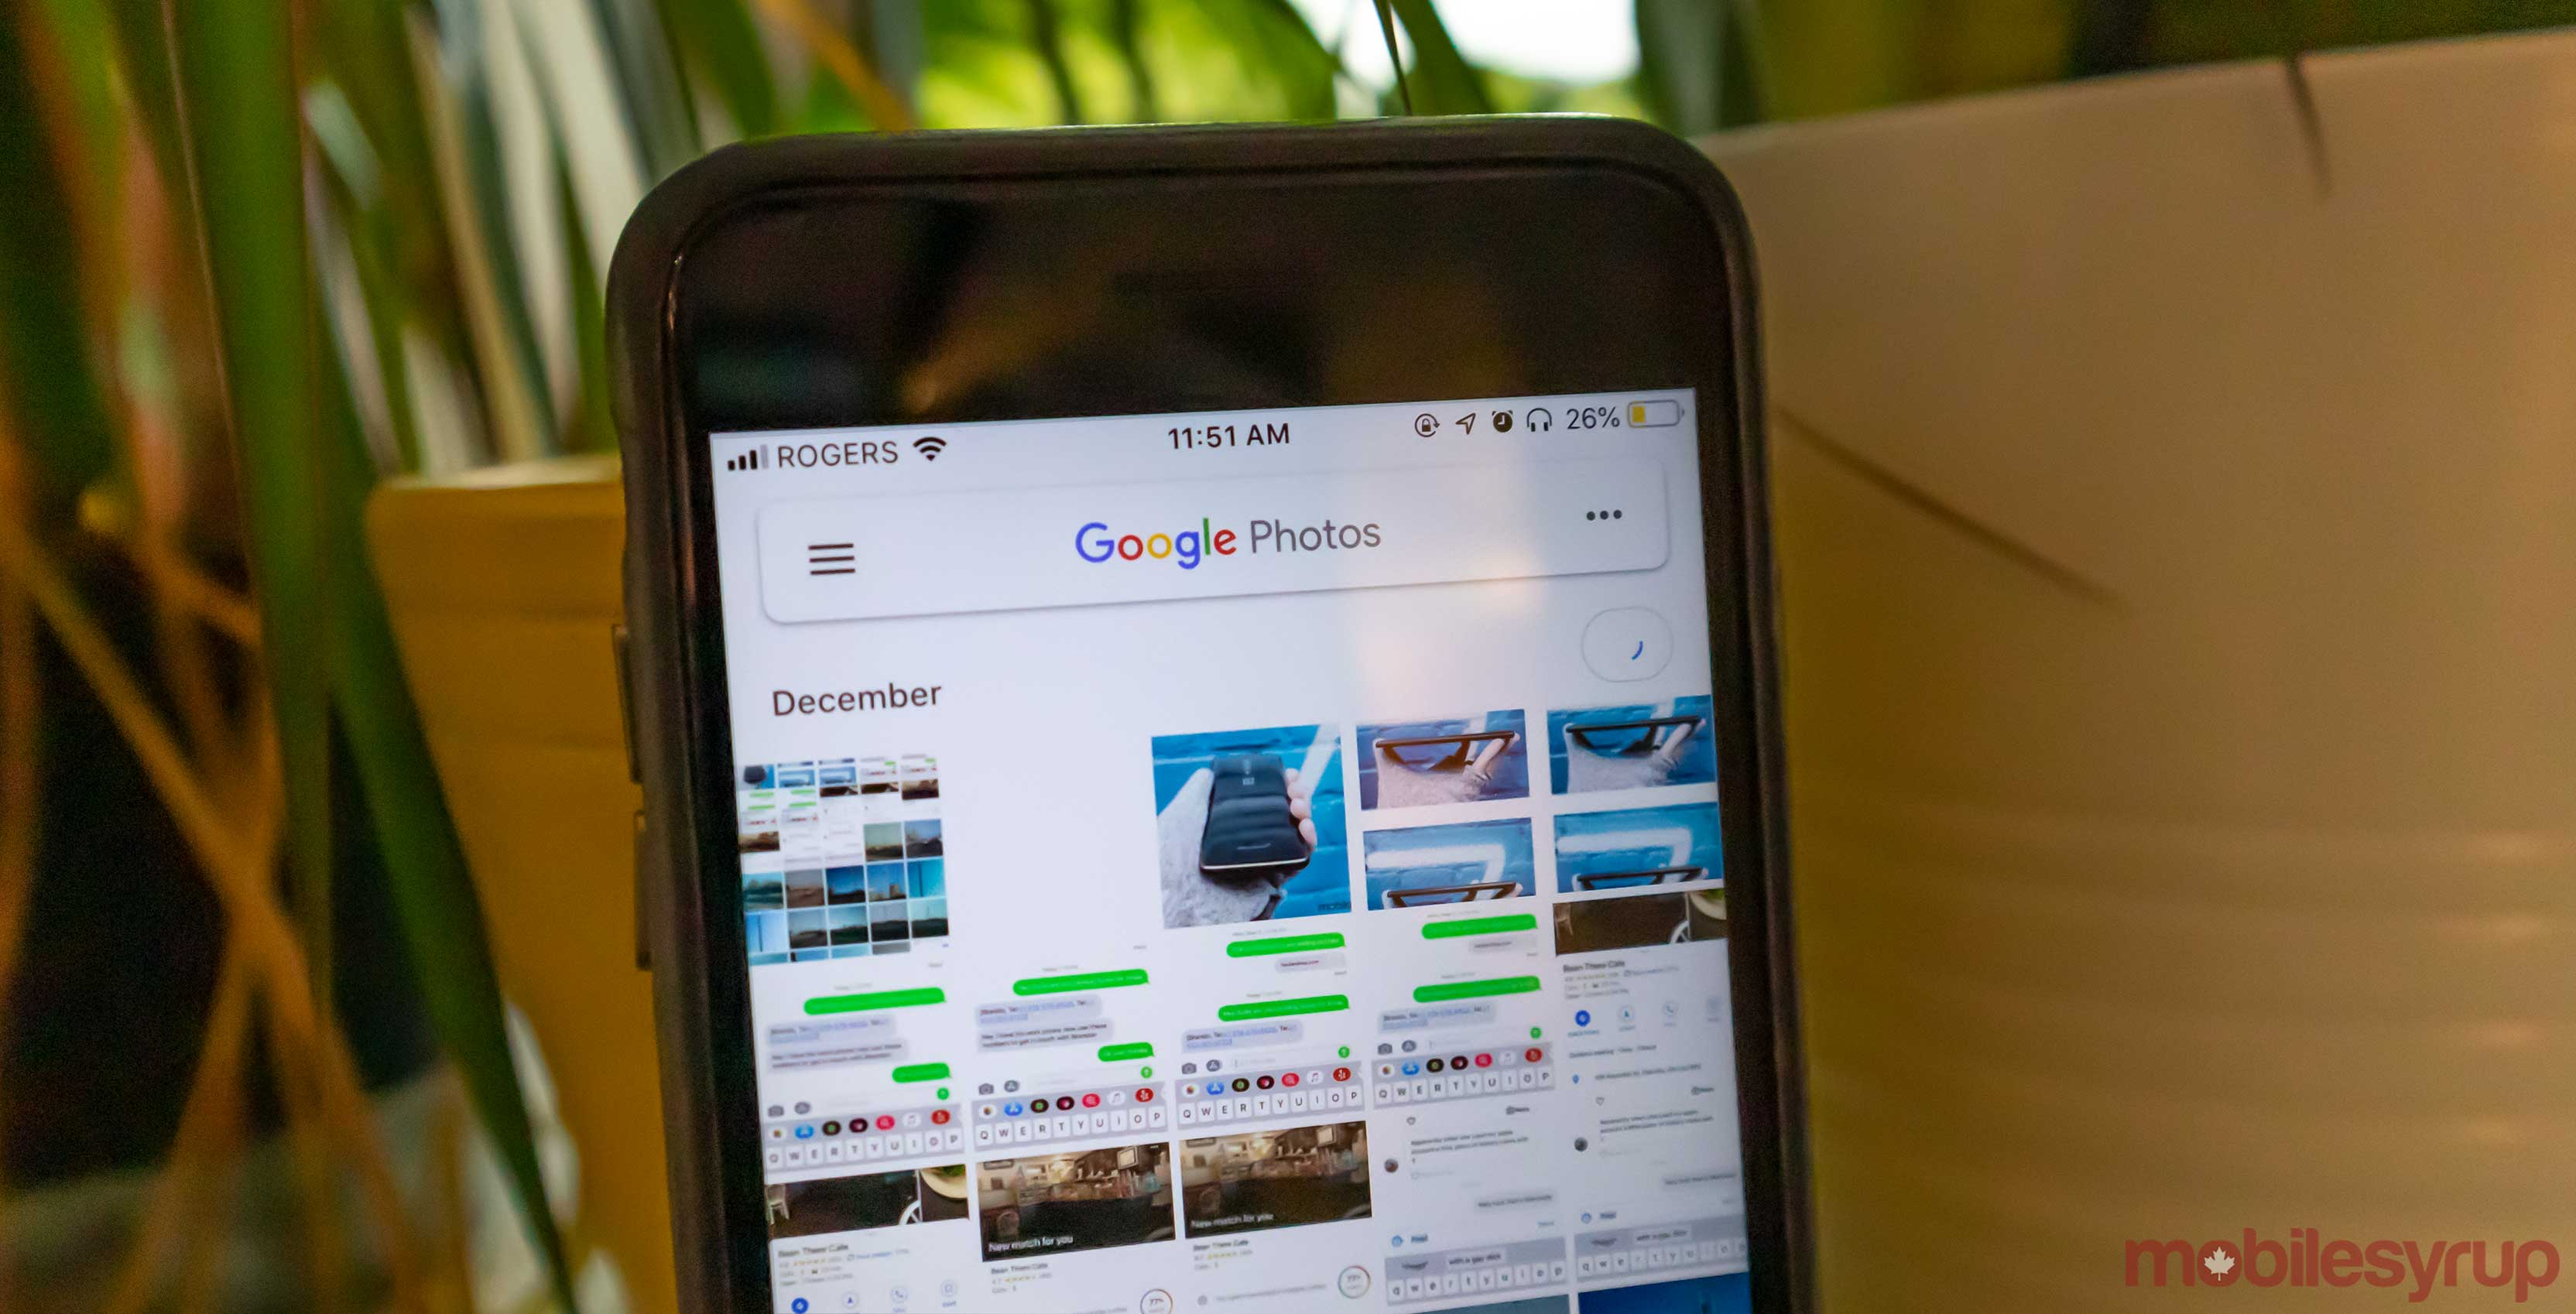 Google photos no longer offers unlimited storage for unsupported video files